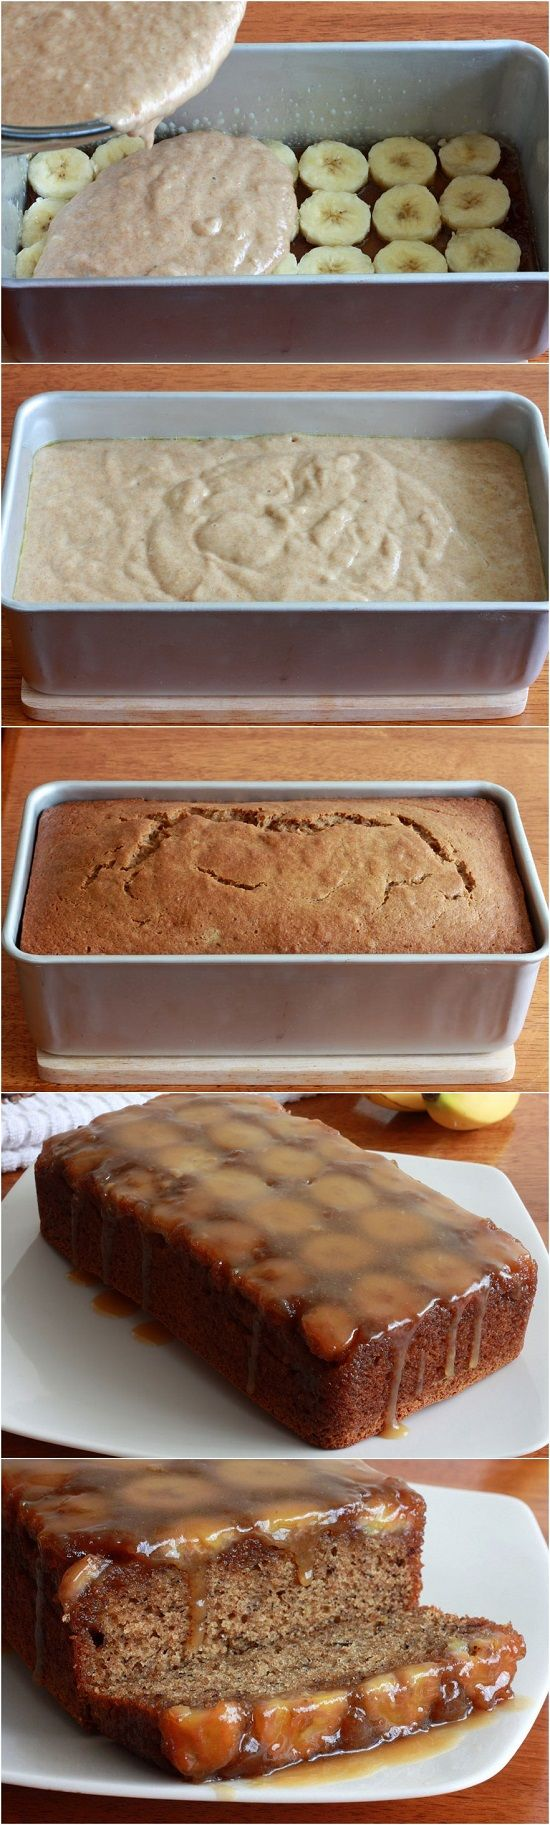 The Best Ever Upside Down Banana Bread | Inspired Craft Ideas